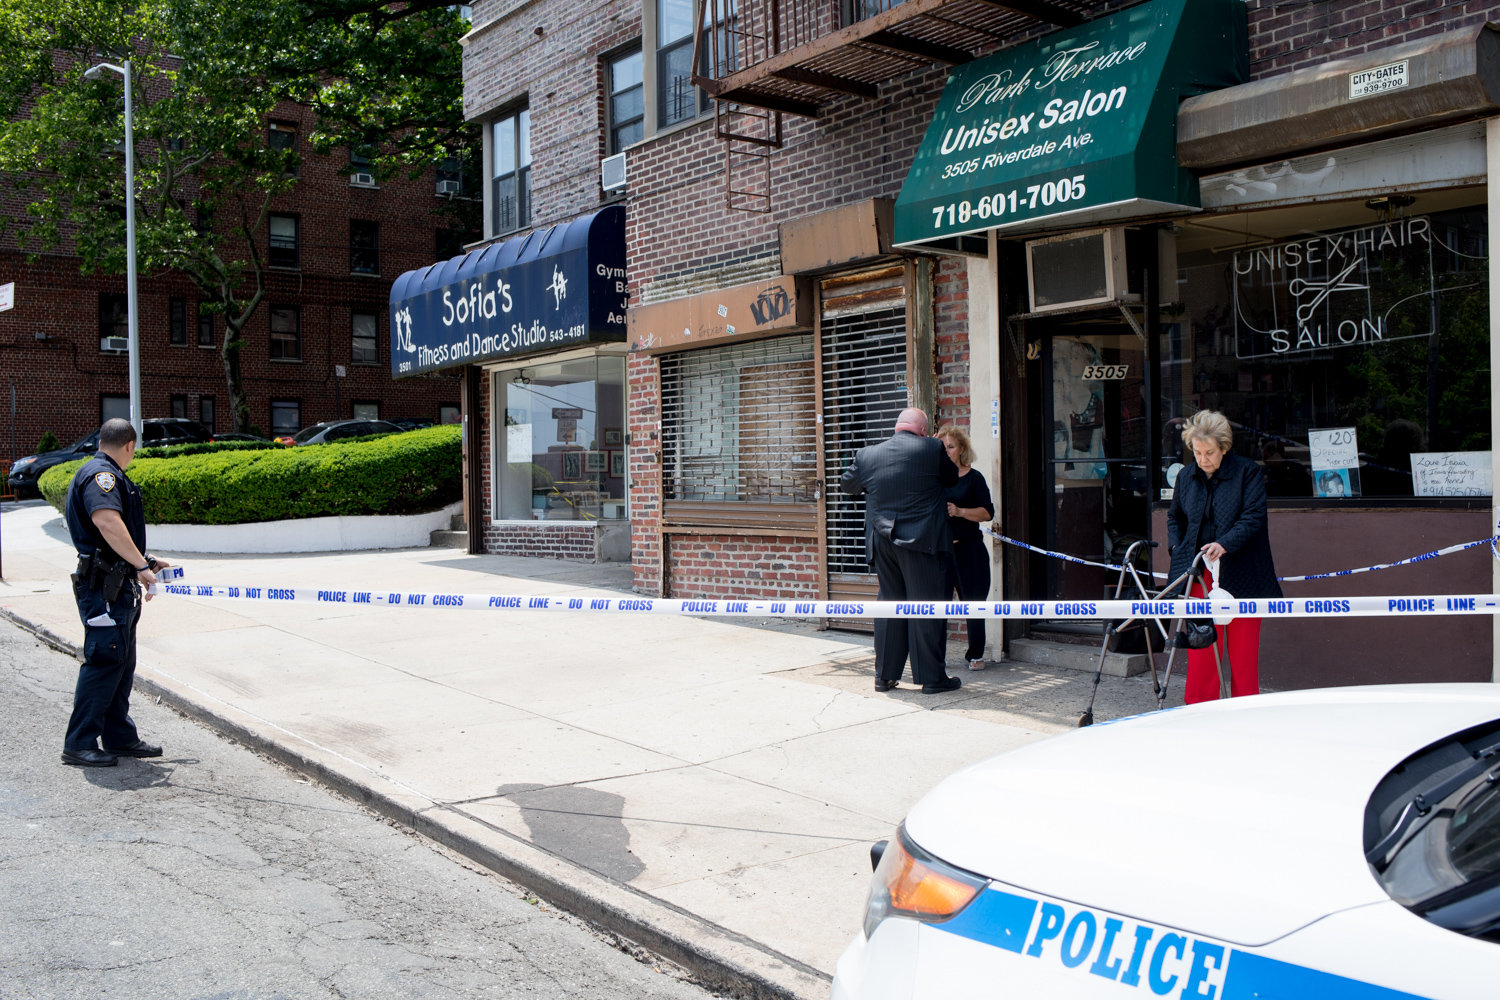 A police officer sets up a perimeter around the Park Terrace Unisex Salon on Riverdale Avenue during a robbery investigation in June 2018. Crime in the 50th Precinct climbed slightly last year compared to what ultimately became a very busy 2018.